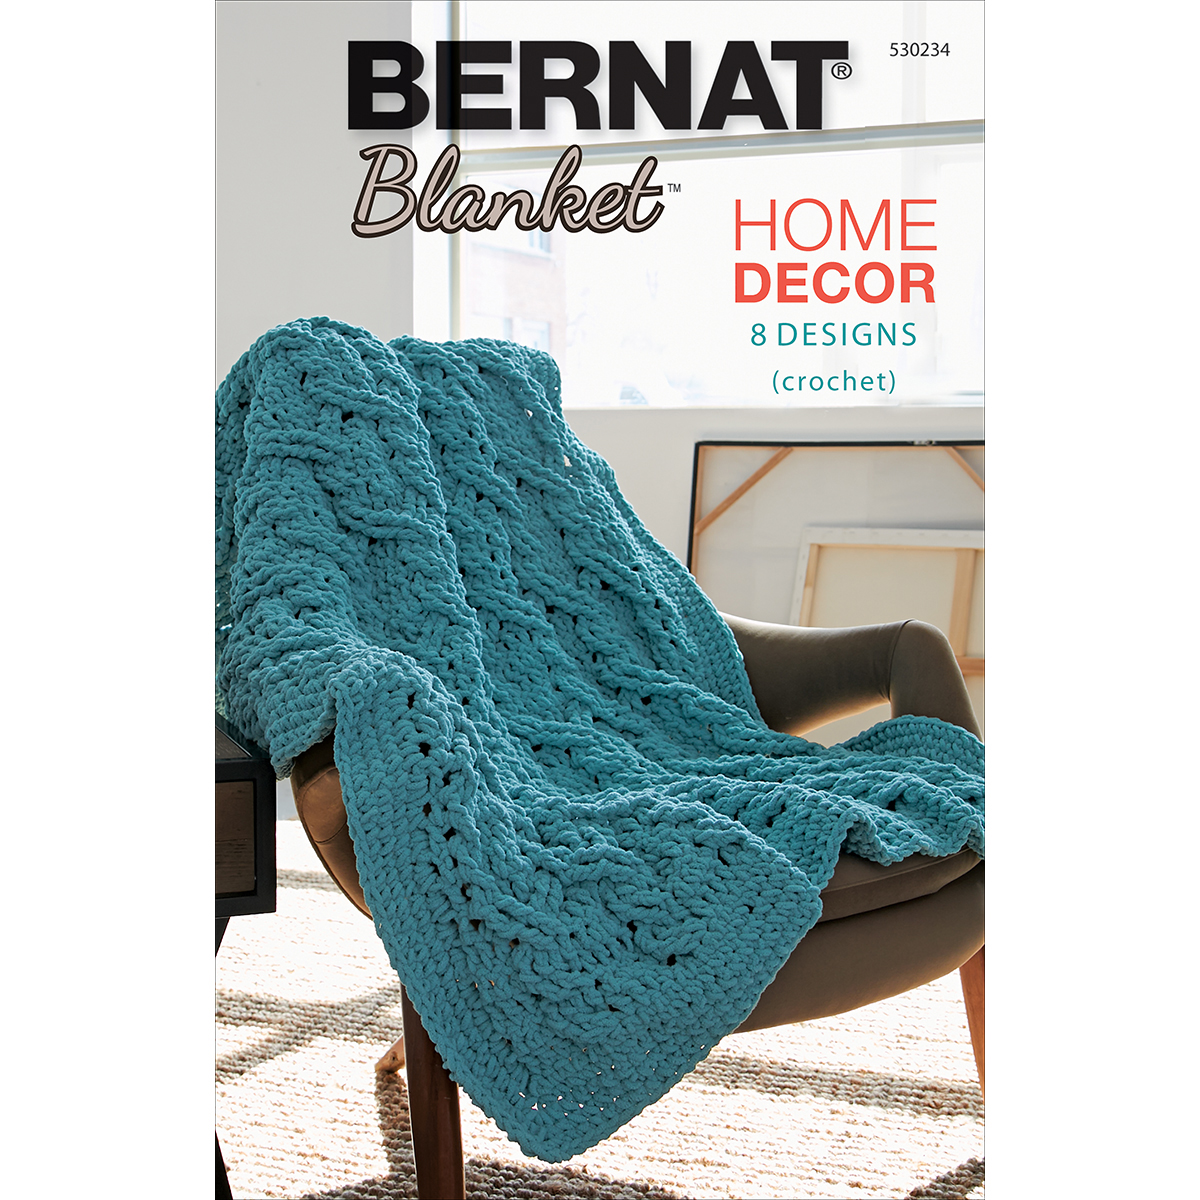 Crochet Patterns Bernat Blanket Yarn : ... Crochet Patterns ? Crochet Books Home DEcor ? Bernat Blanket Home